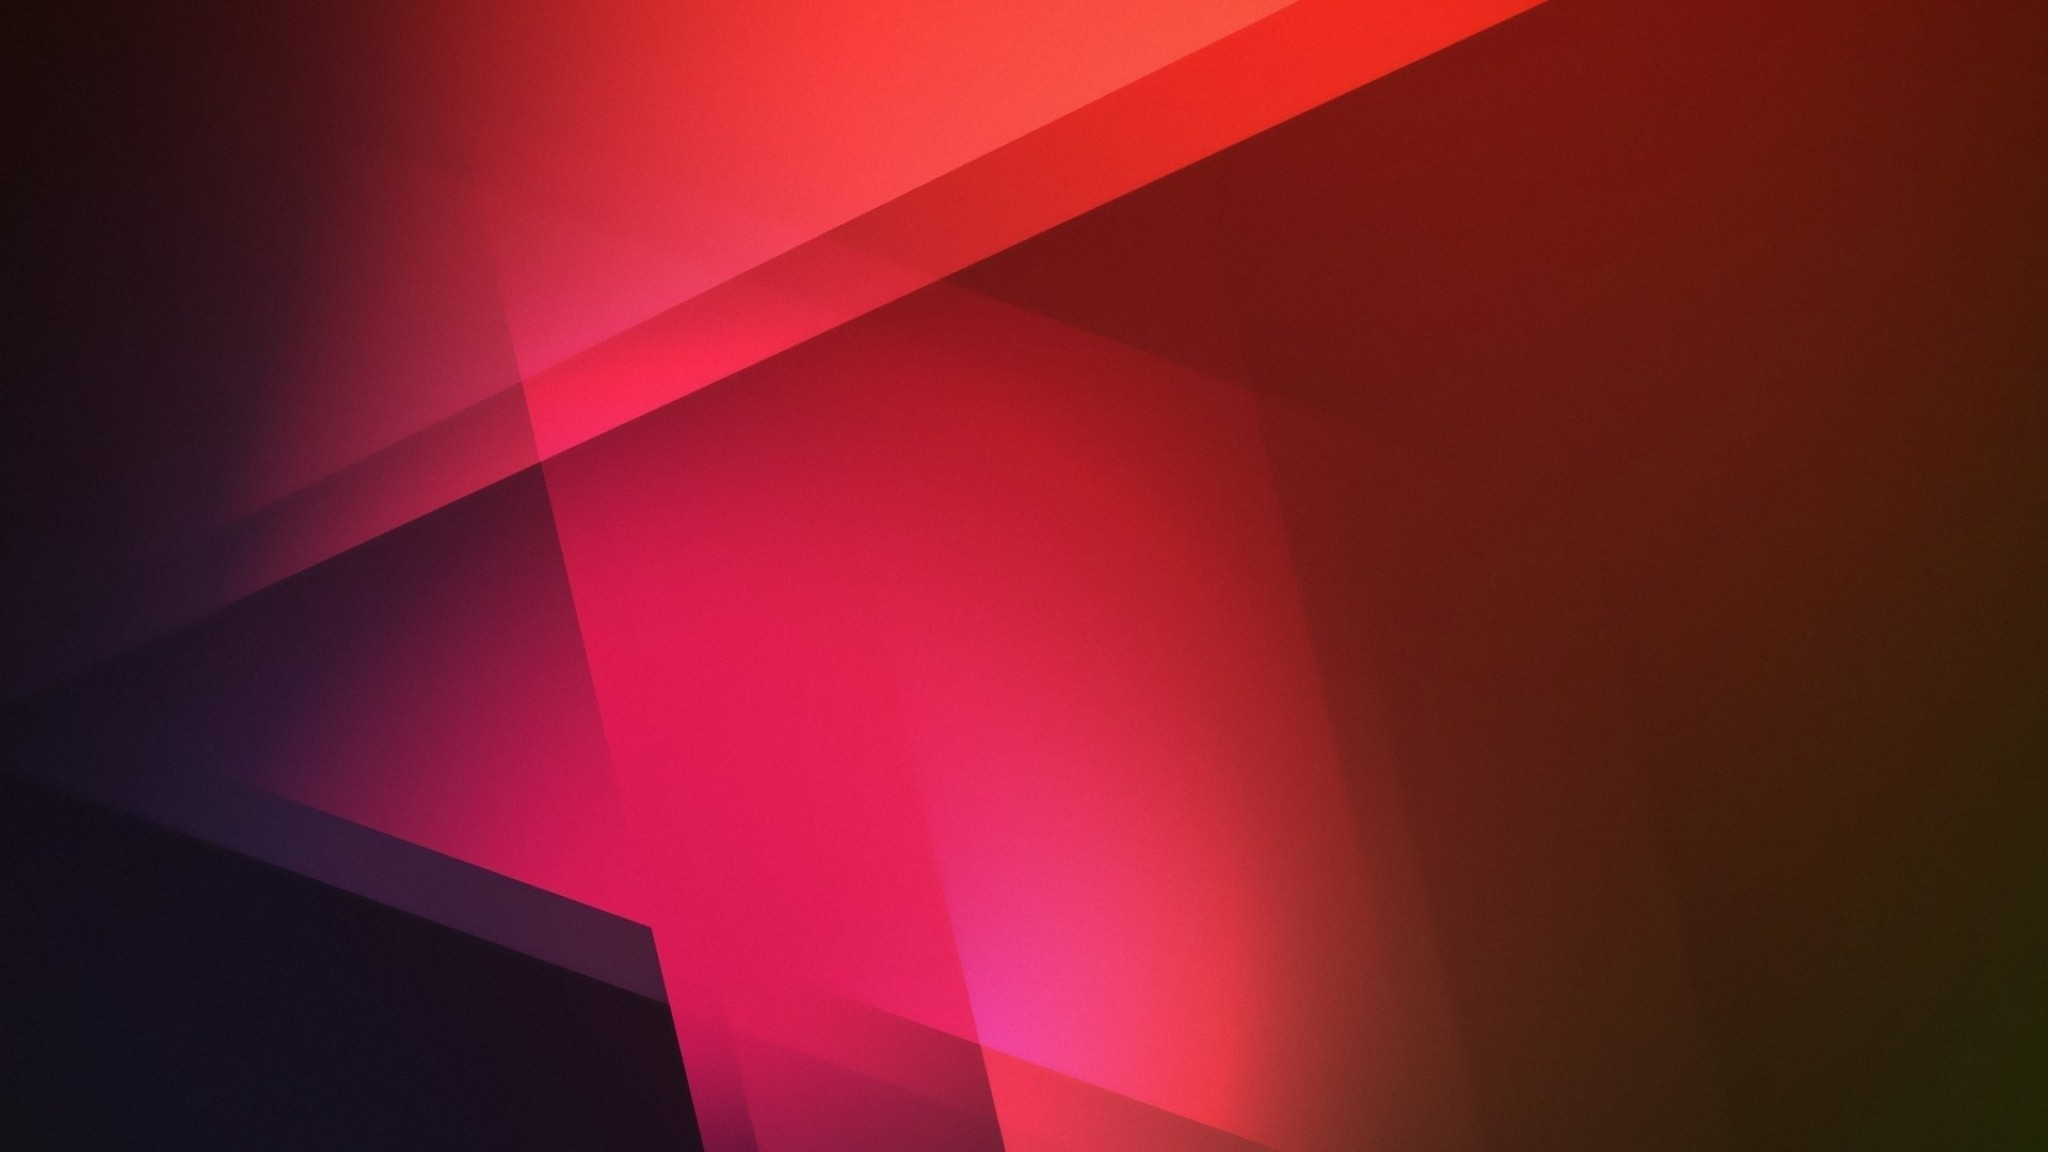 Red background hd download free beautiful full hd for 2048x1152 wallpaper